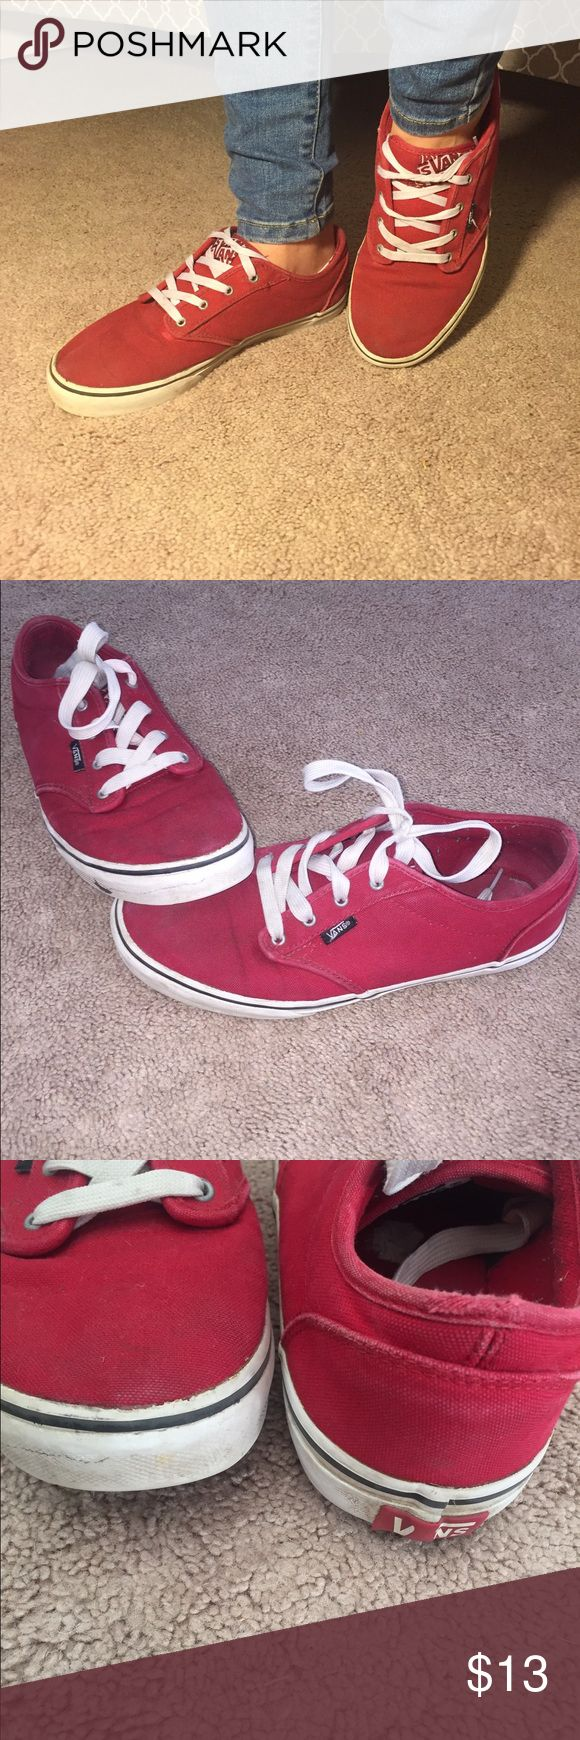 Red vans authentic skater shoe Well loved shoe. Used and has been worn. There's marks on front, laces are faded. Vans Shoes Sneakers